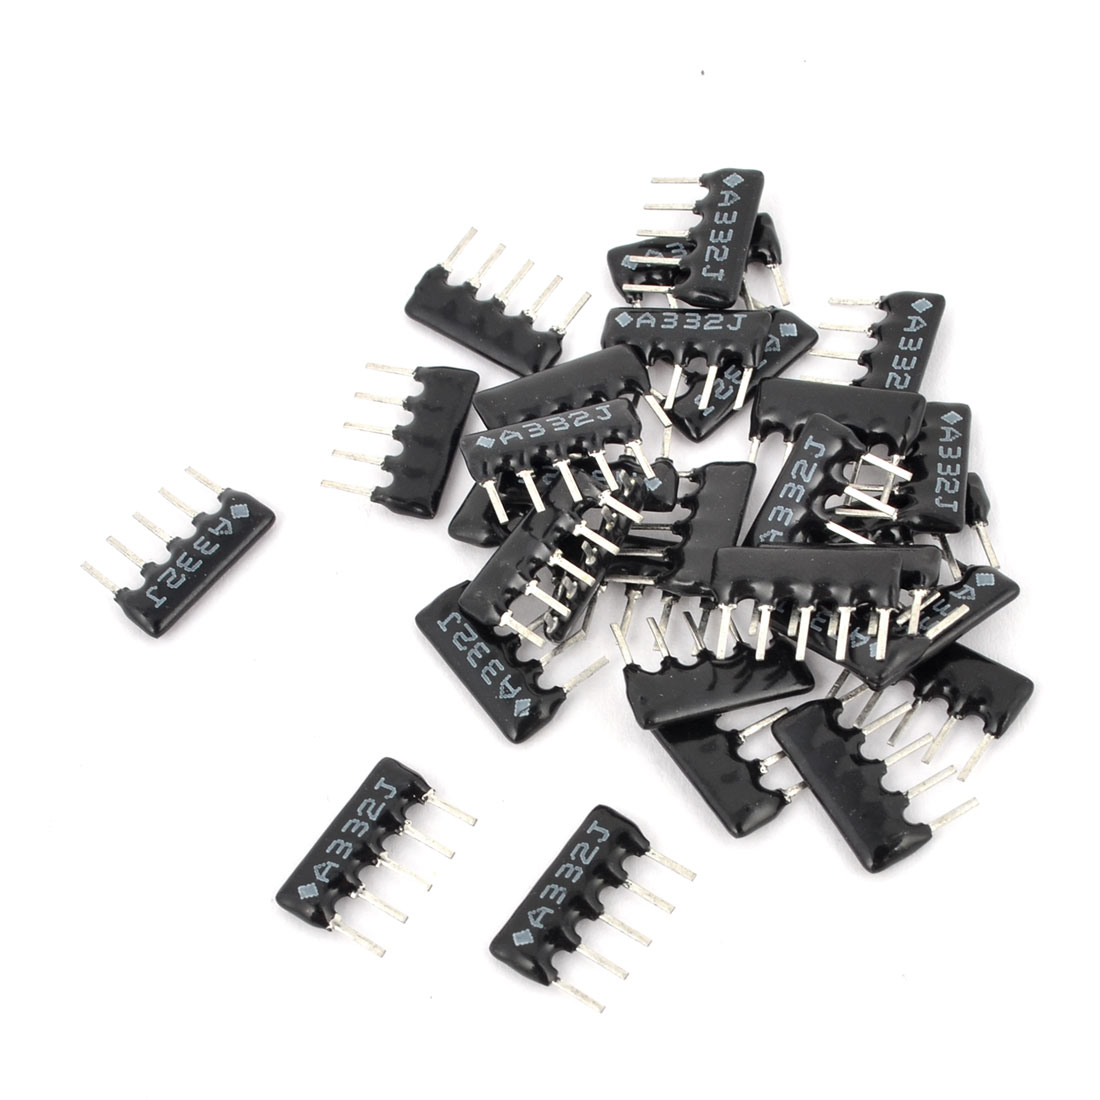 15 Pcs A05-3322 3.2K ohm 2.54 Pitch 5 Pin Lead Network Resistors